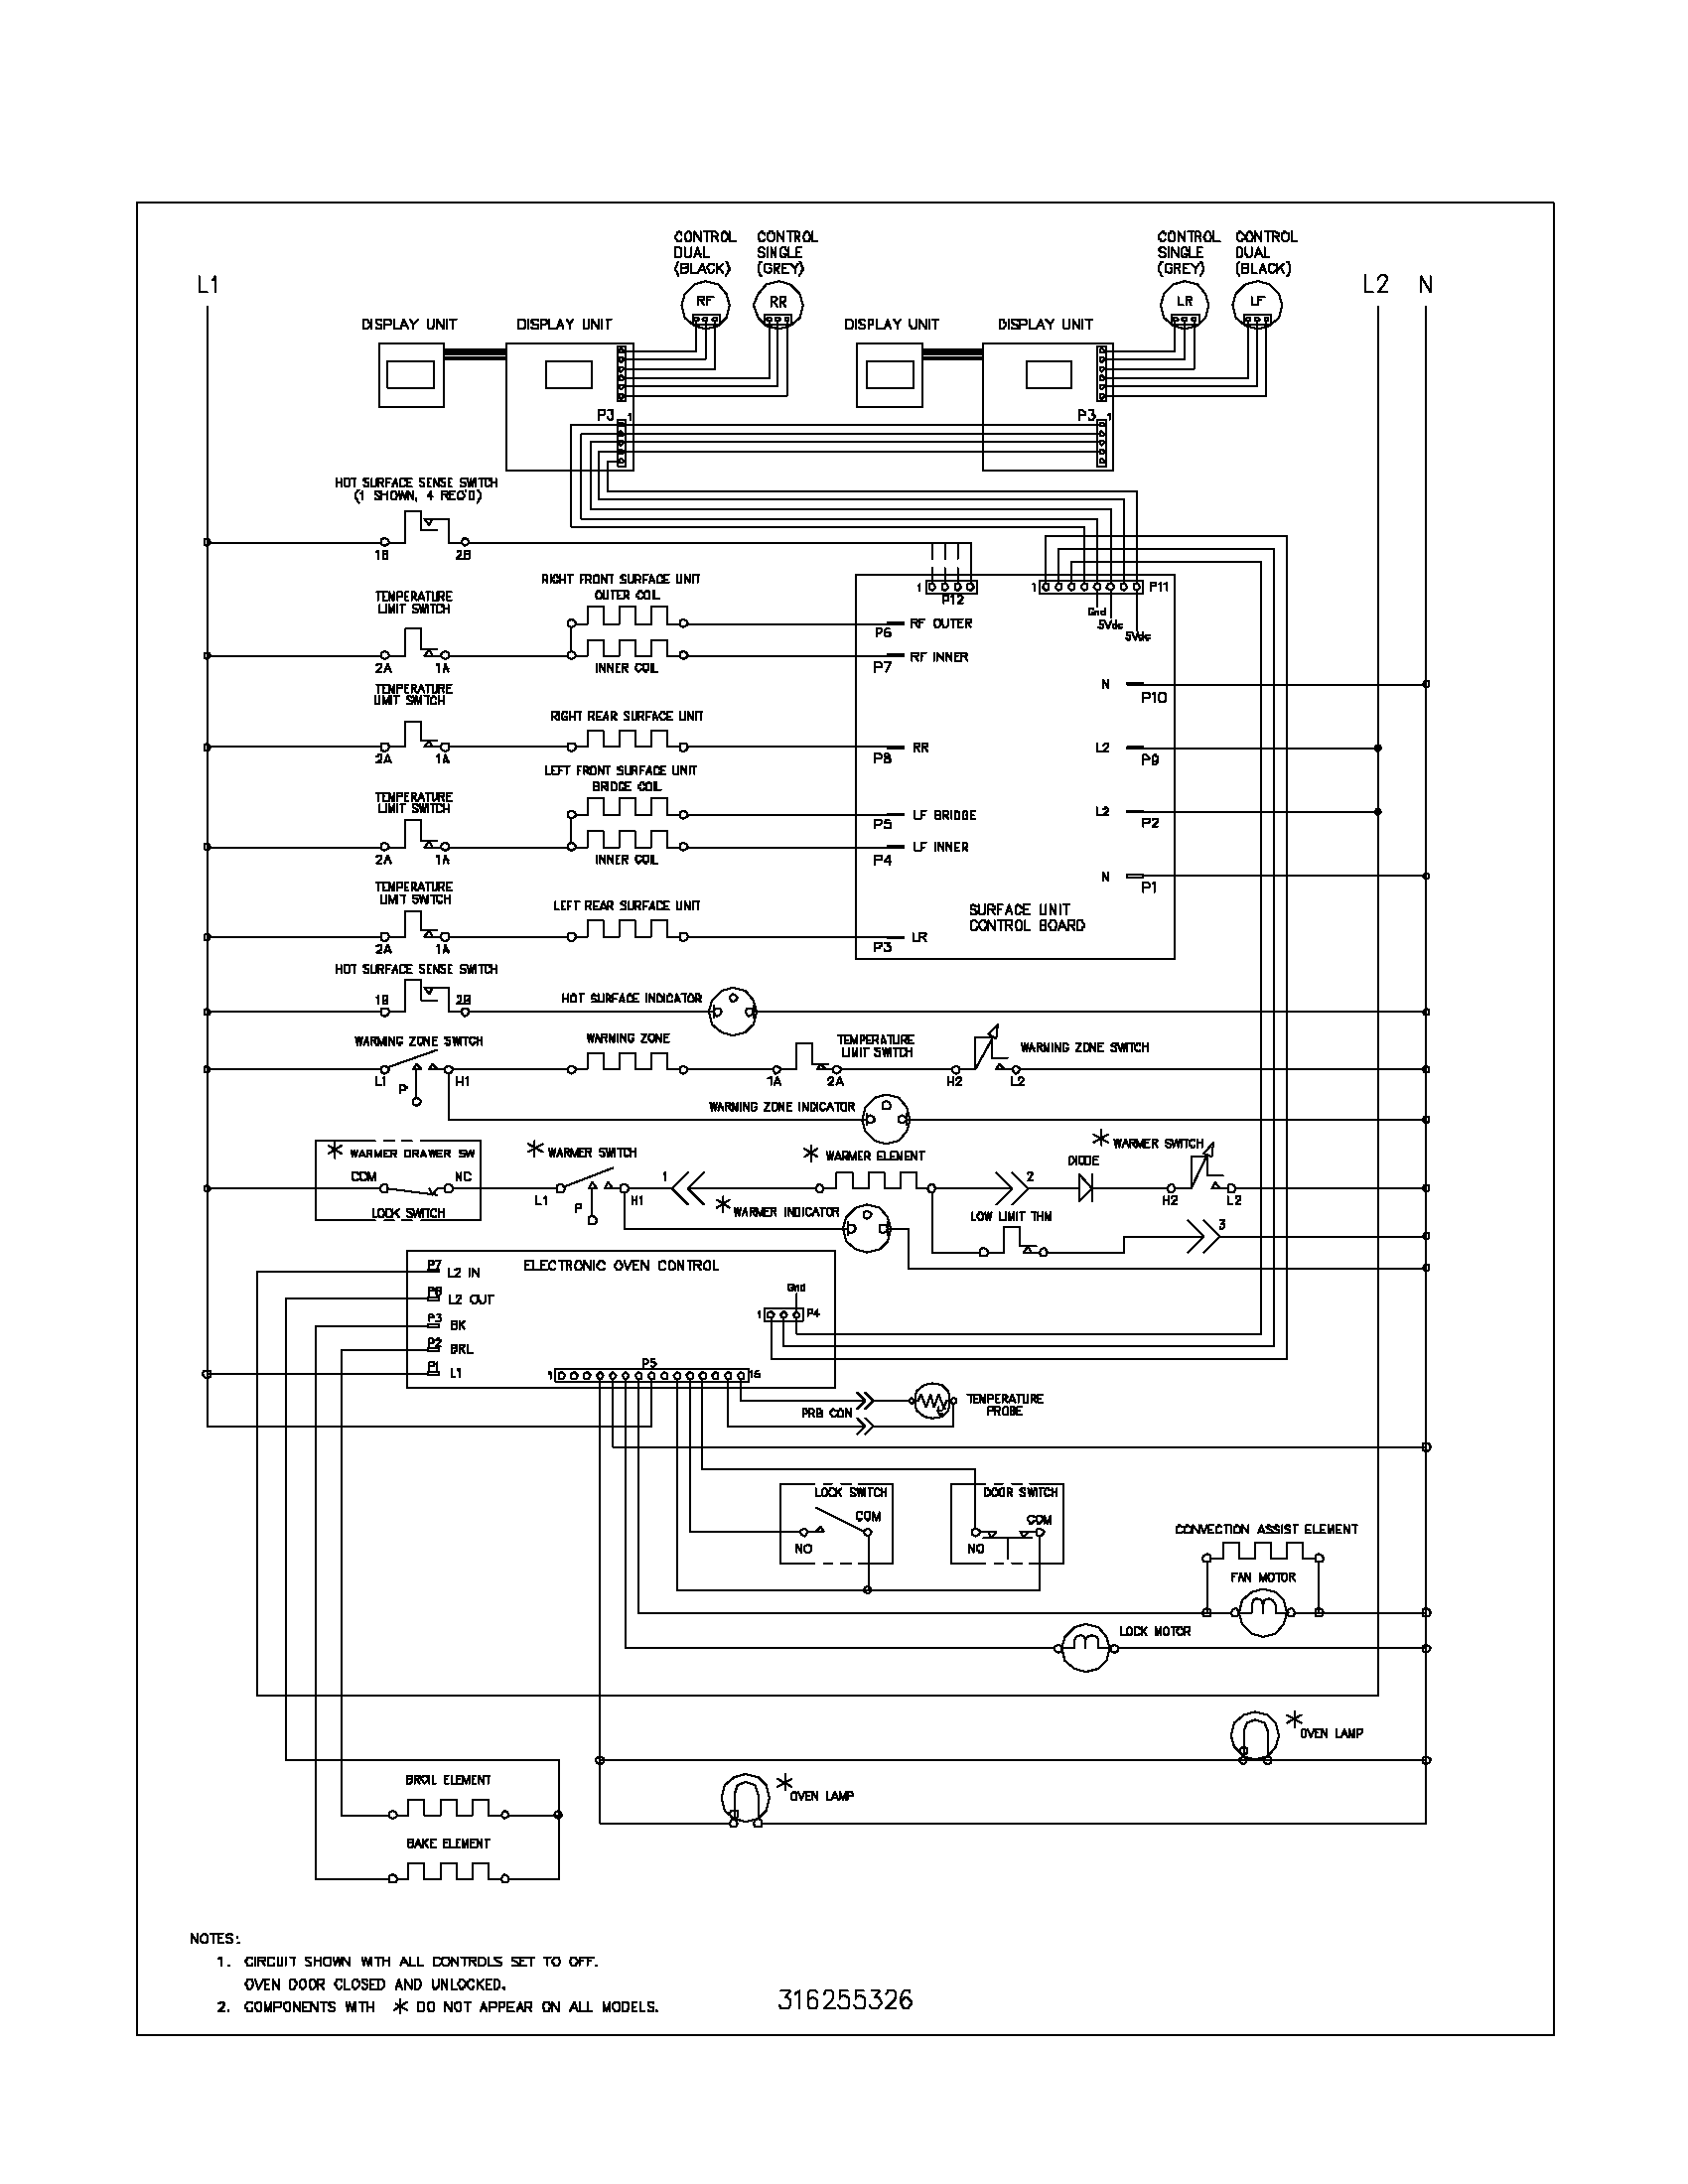 wiring schematic parts stove wiring diagram & name original wiring diagram jpg views  at honlapkeszites.co